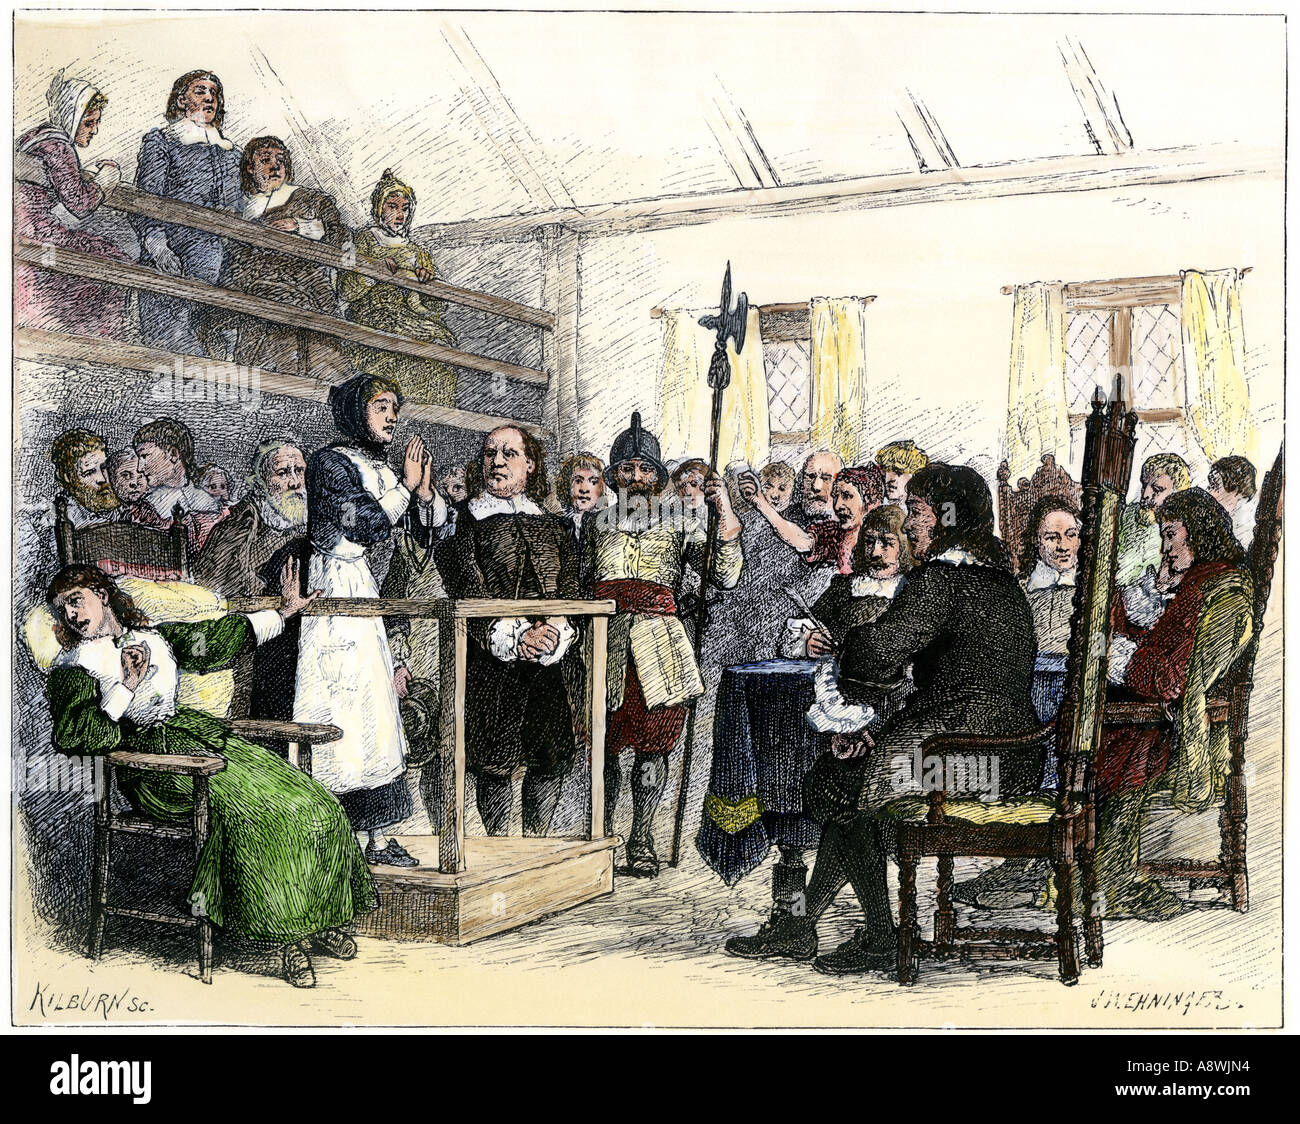 Trial of wife of Giles Corey for witchcraft Salem 1692. Hand-colored woodcut - Stock Image